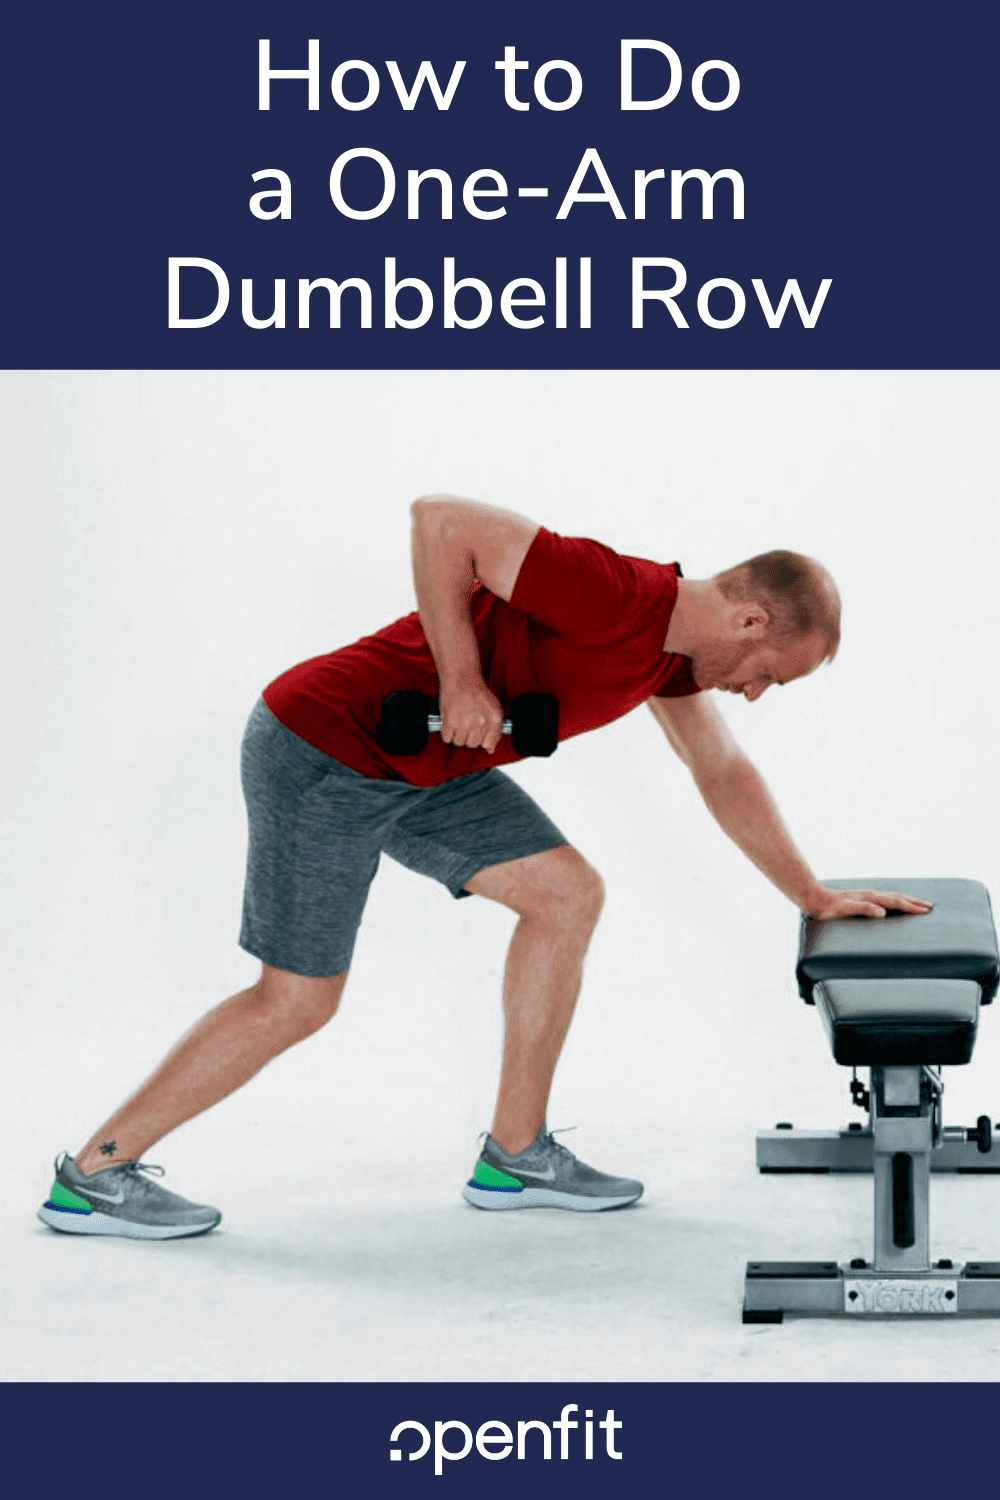 one arm dumbbell pin image